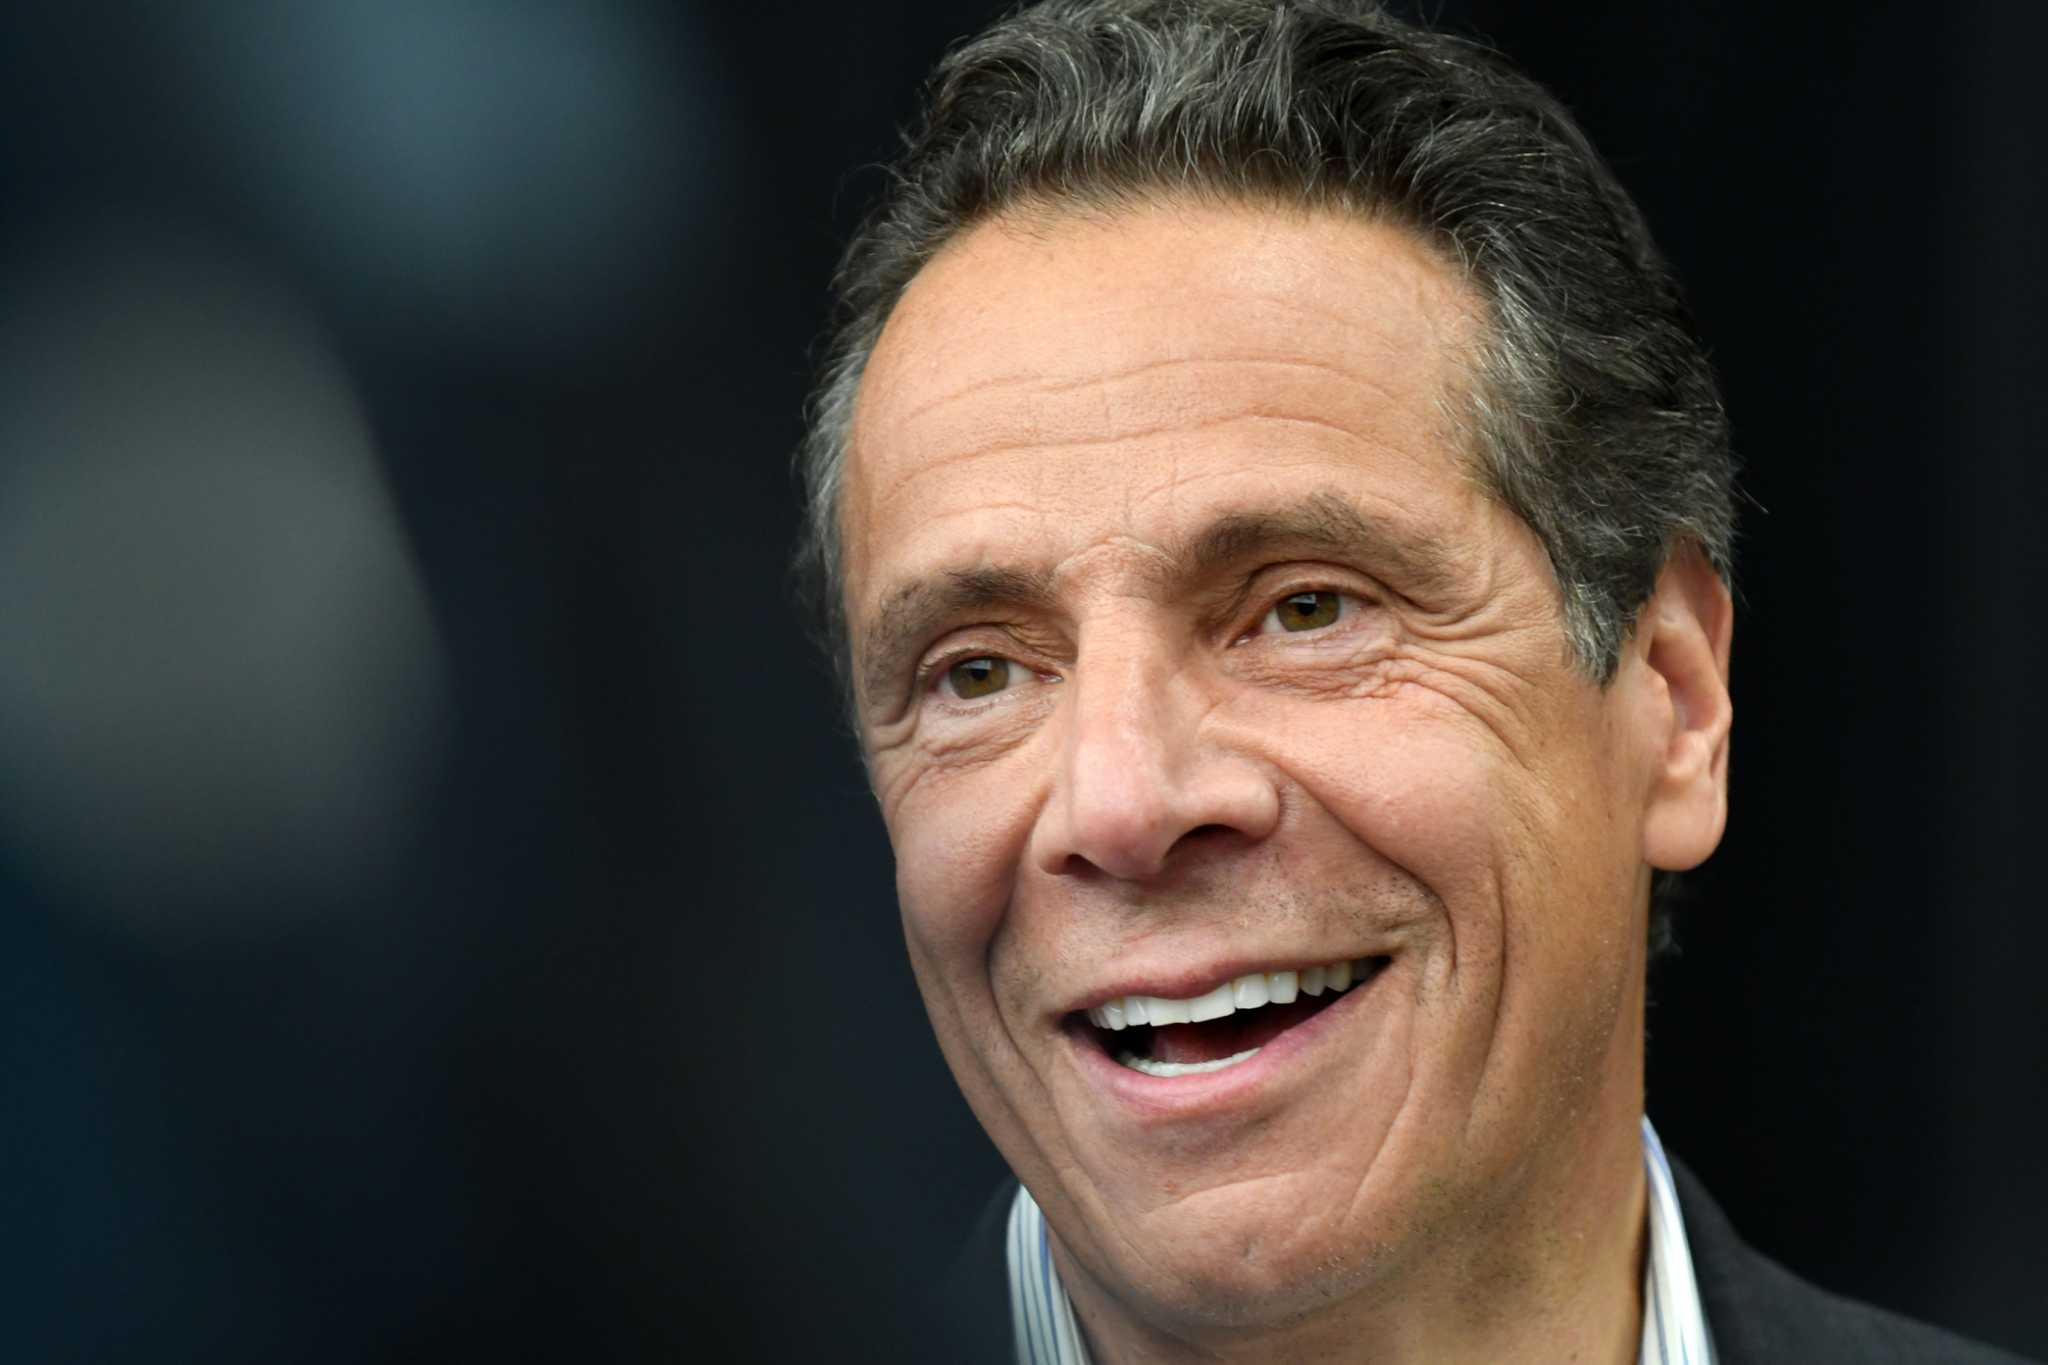 Cuomo supportive of minimum wage hike for prison inmates